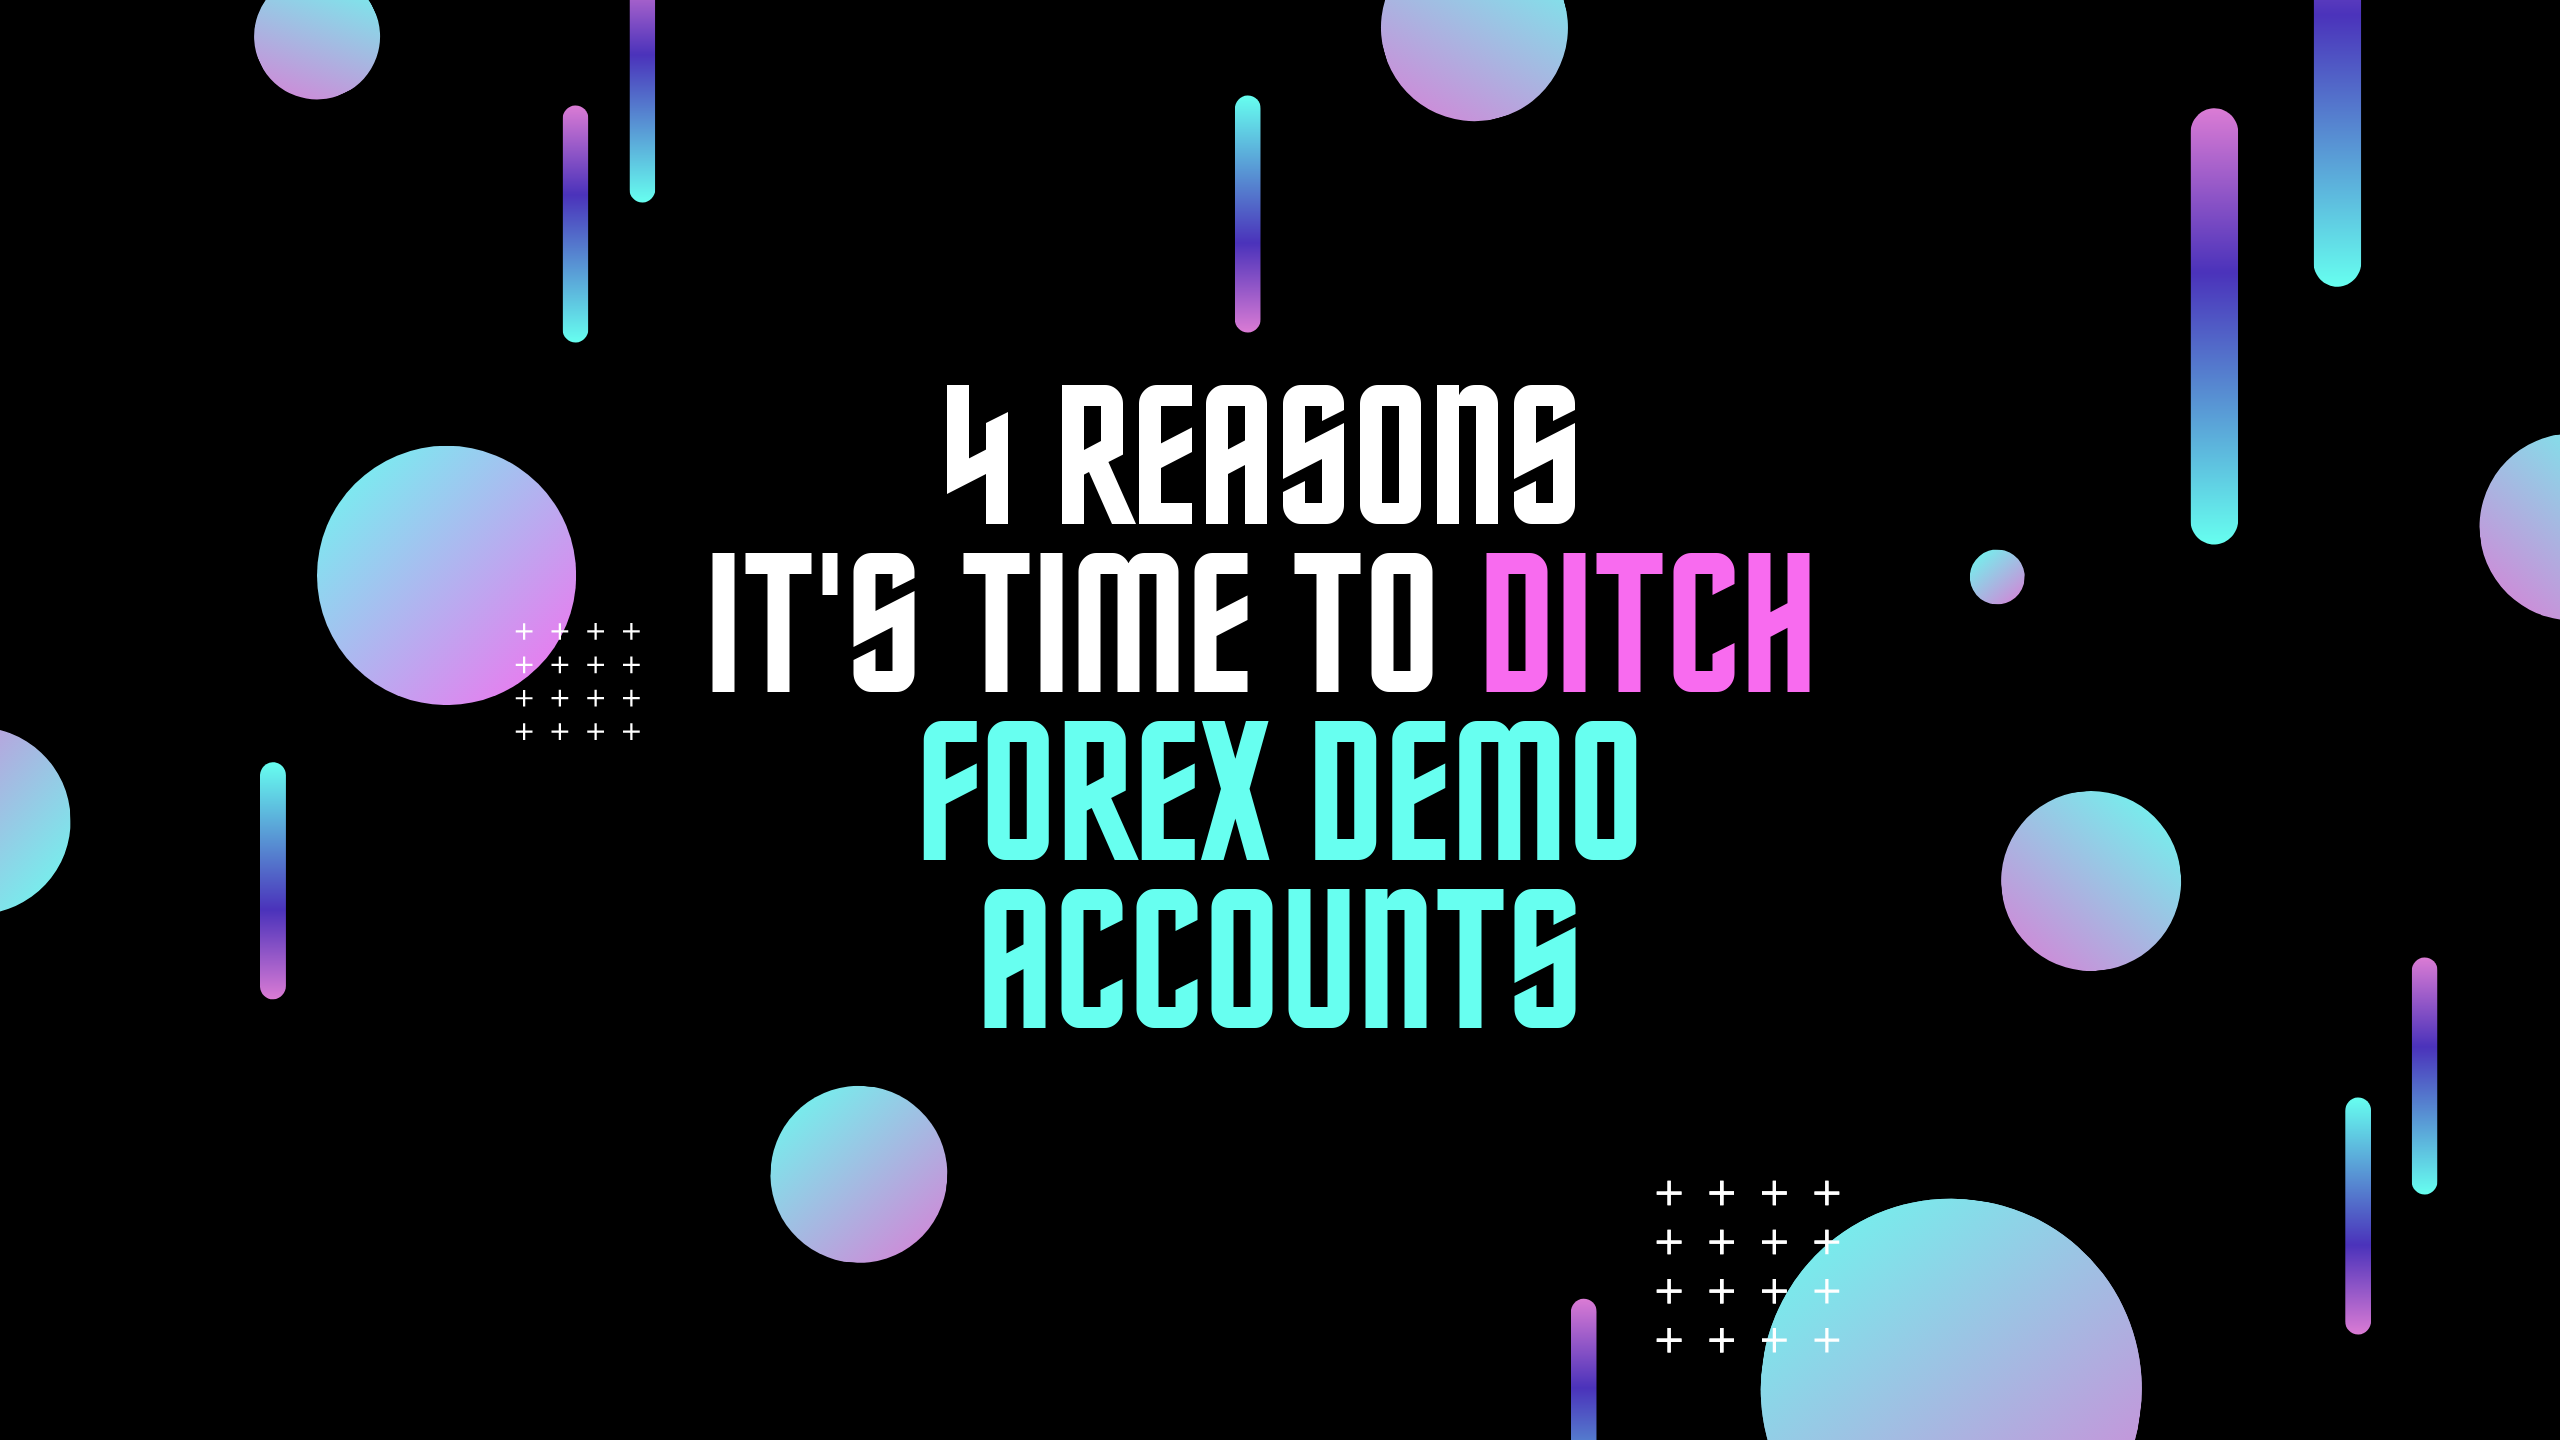 Ditch Forex Demo Accounts